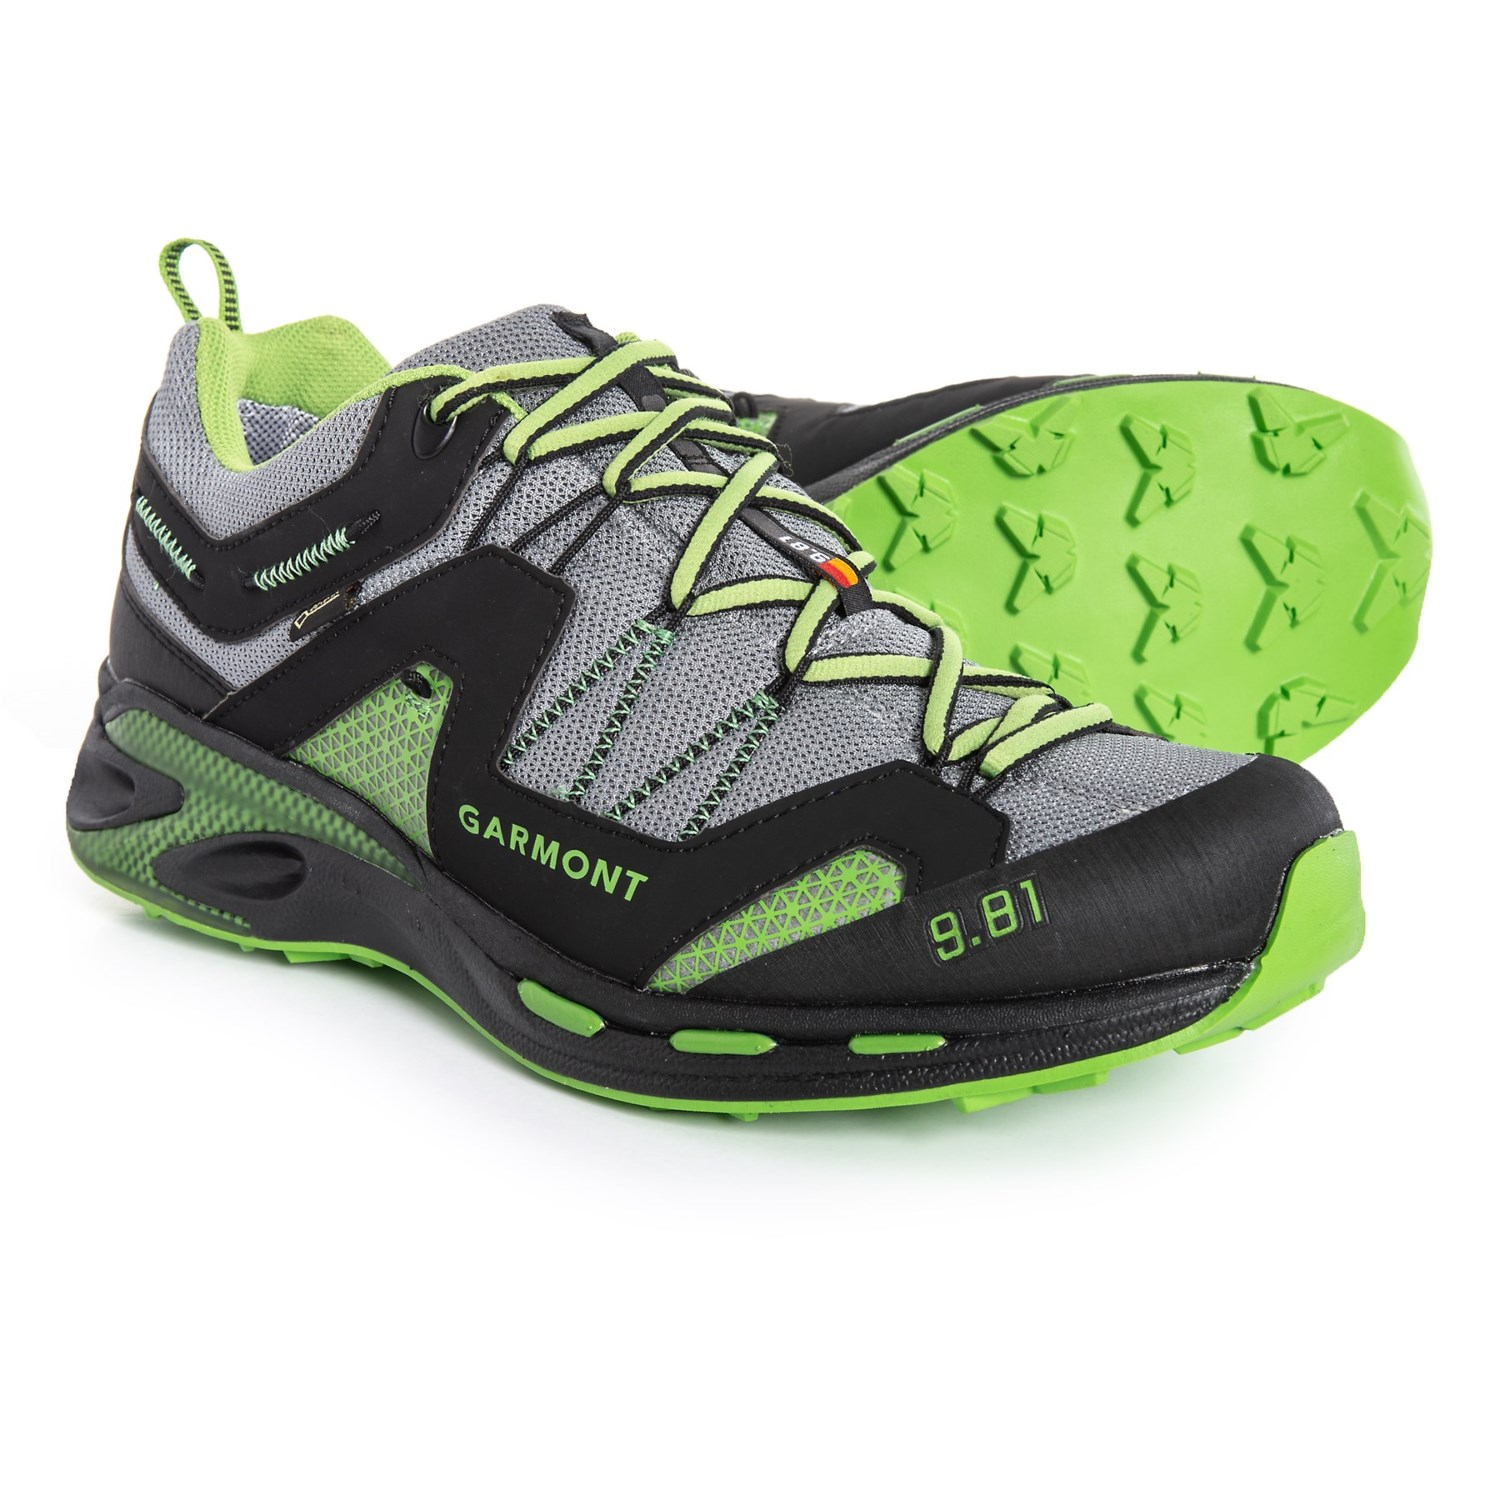 new concept 9e975 32b9c Garmont 9.81 Trail Pro III Gore-Tex® Trail Running Shoes - Waterproof (For  Men)